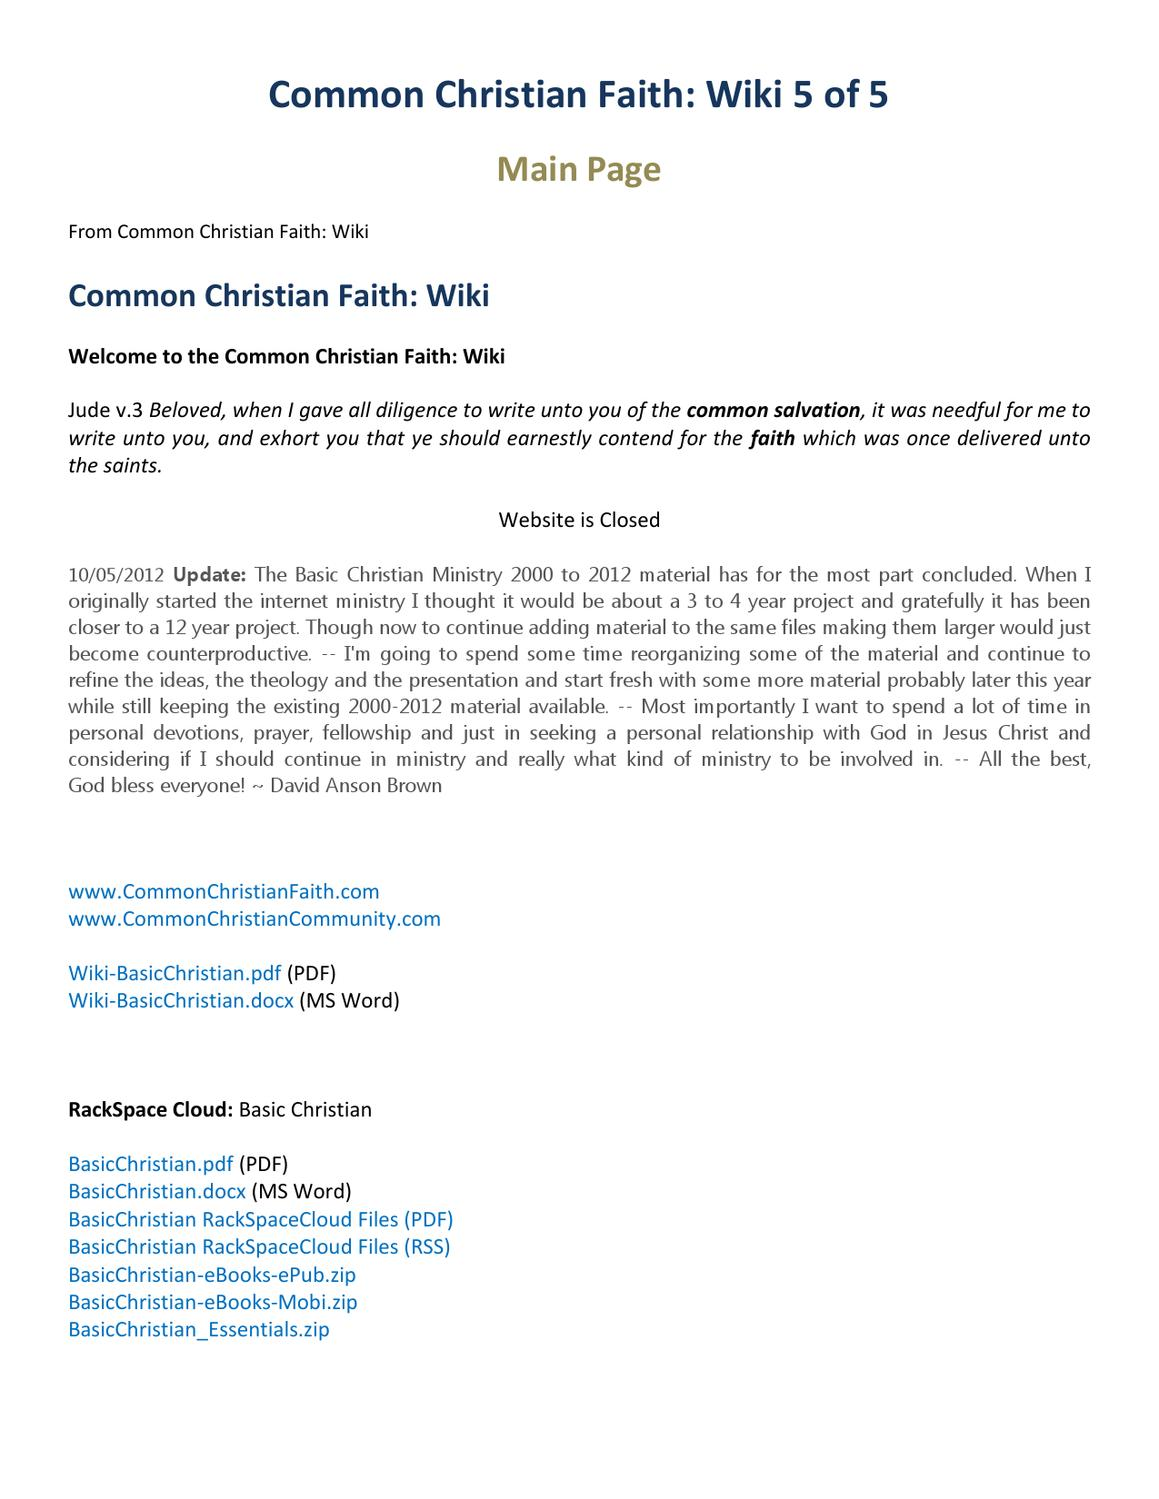 Common christian faith wiki 5 of 5 by david brown issuu fandeluxe Image collections